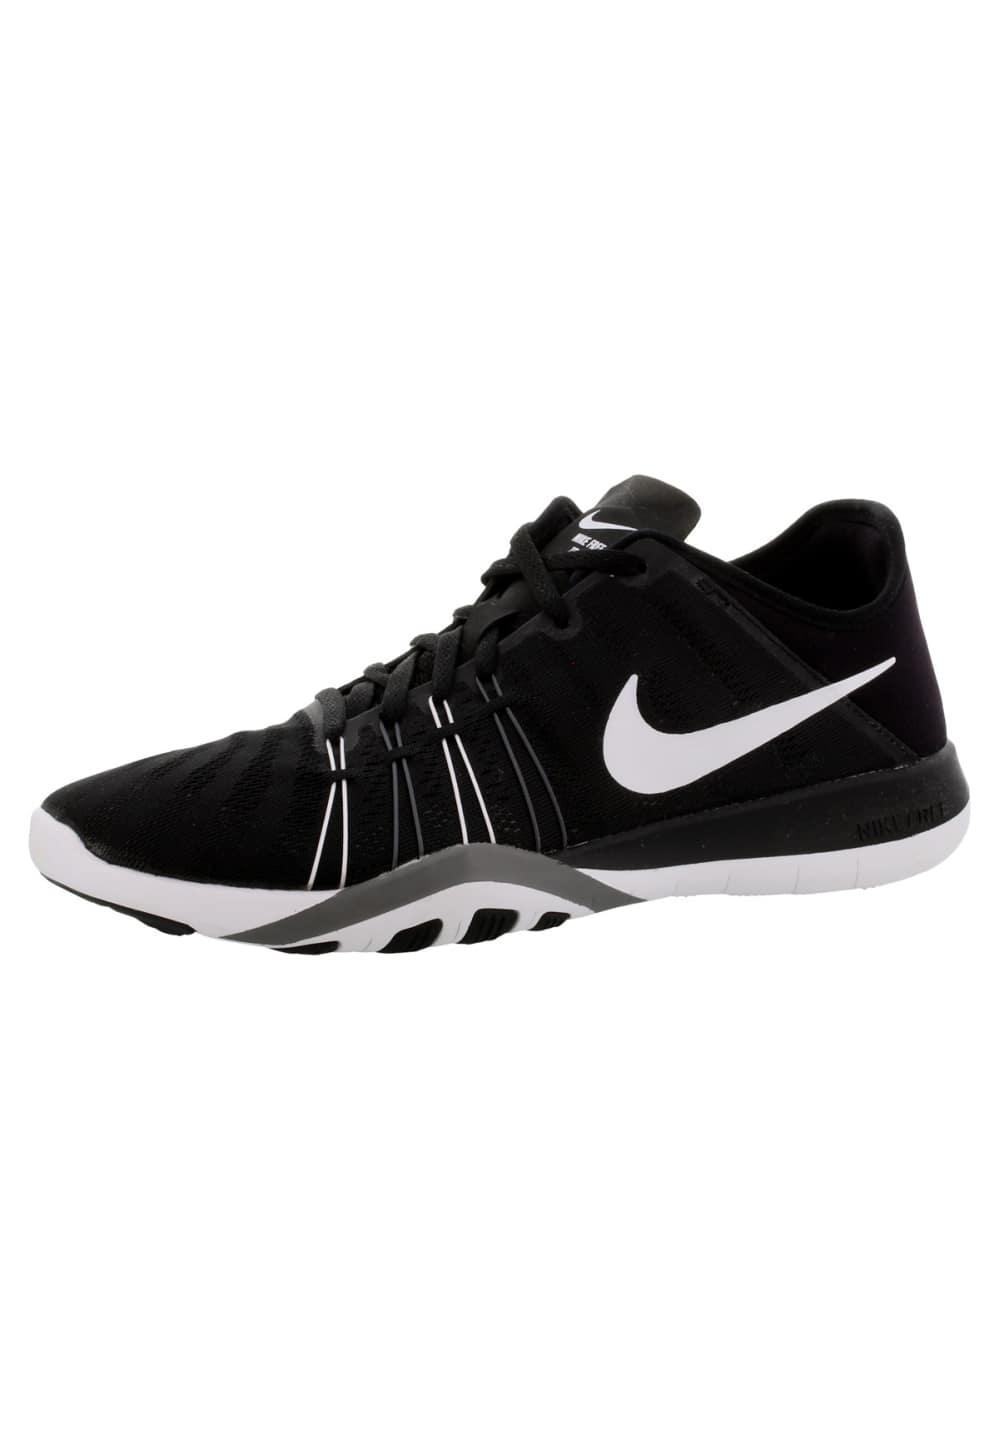 9588ff0b87c7c ... Nike Kaishi 2.0 - Fitness shoes for Women - Black. Back to Overview. 1   2  3  4  5. Previous